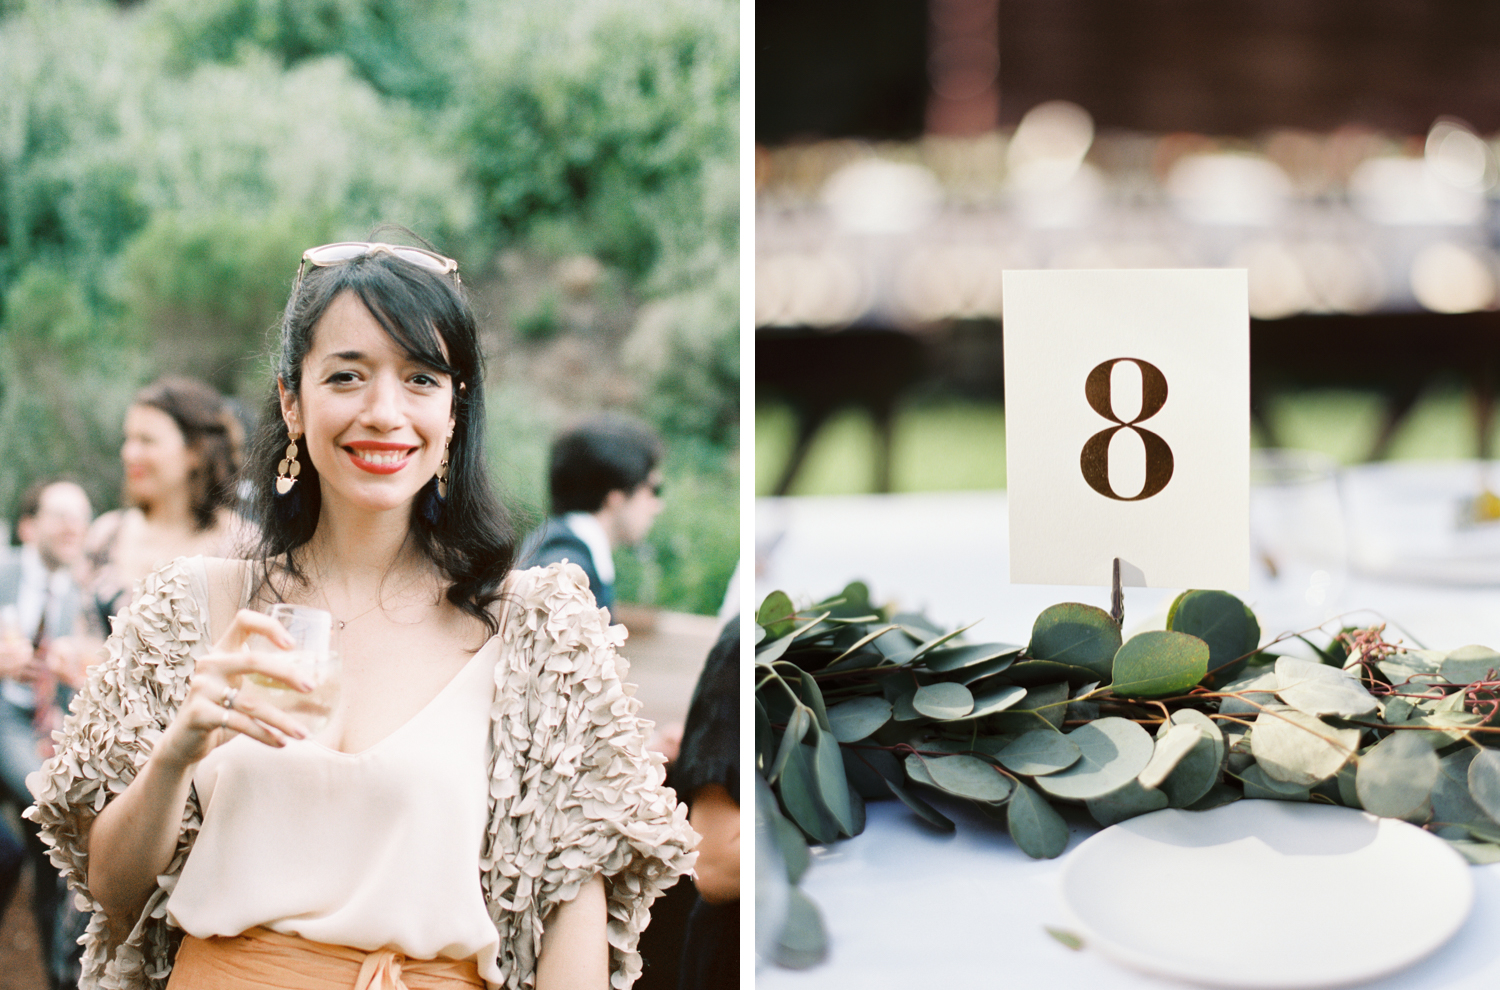 kateweinsteinphoto_topanga_canyon_wedding_the_1909_3.jpg